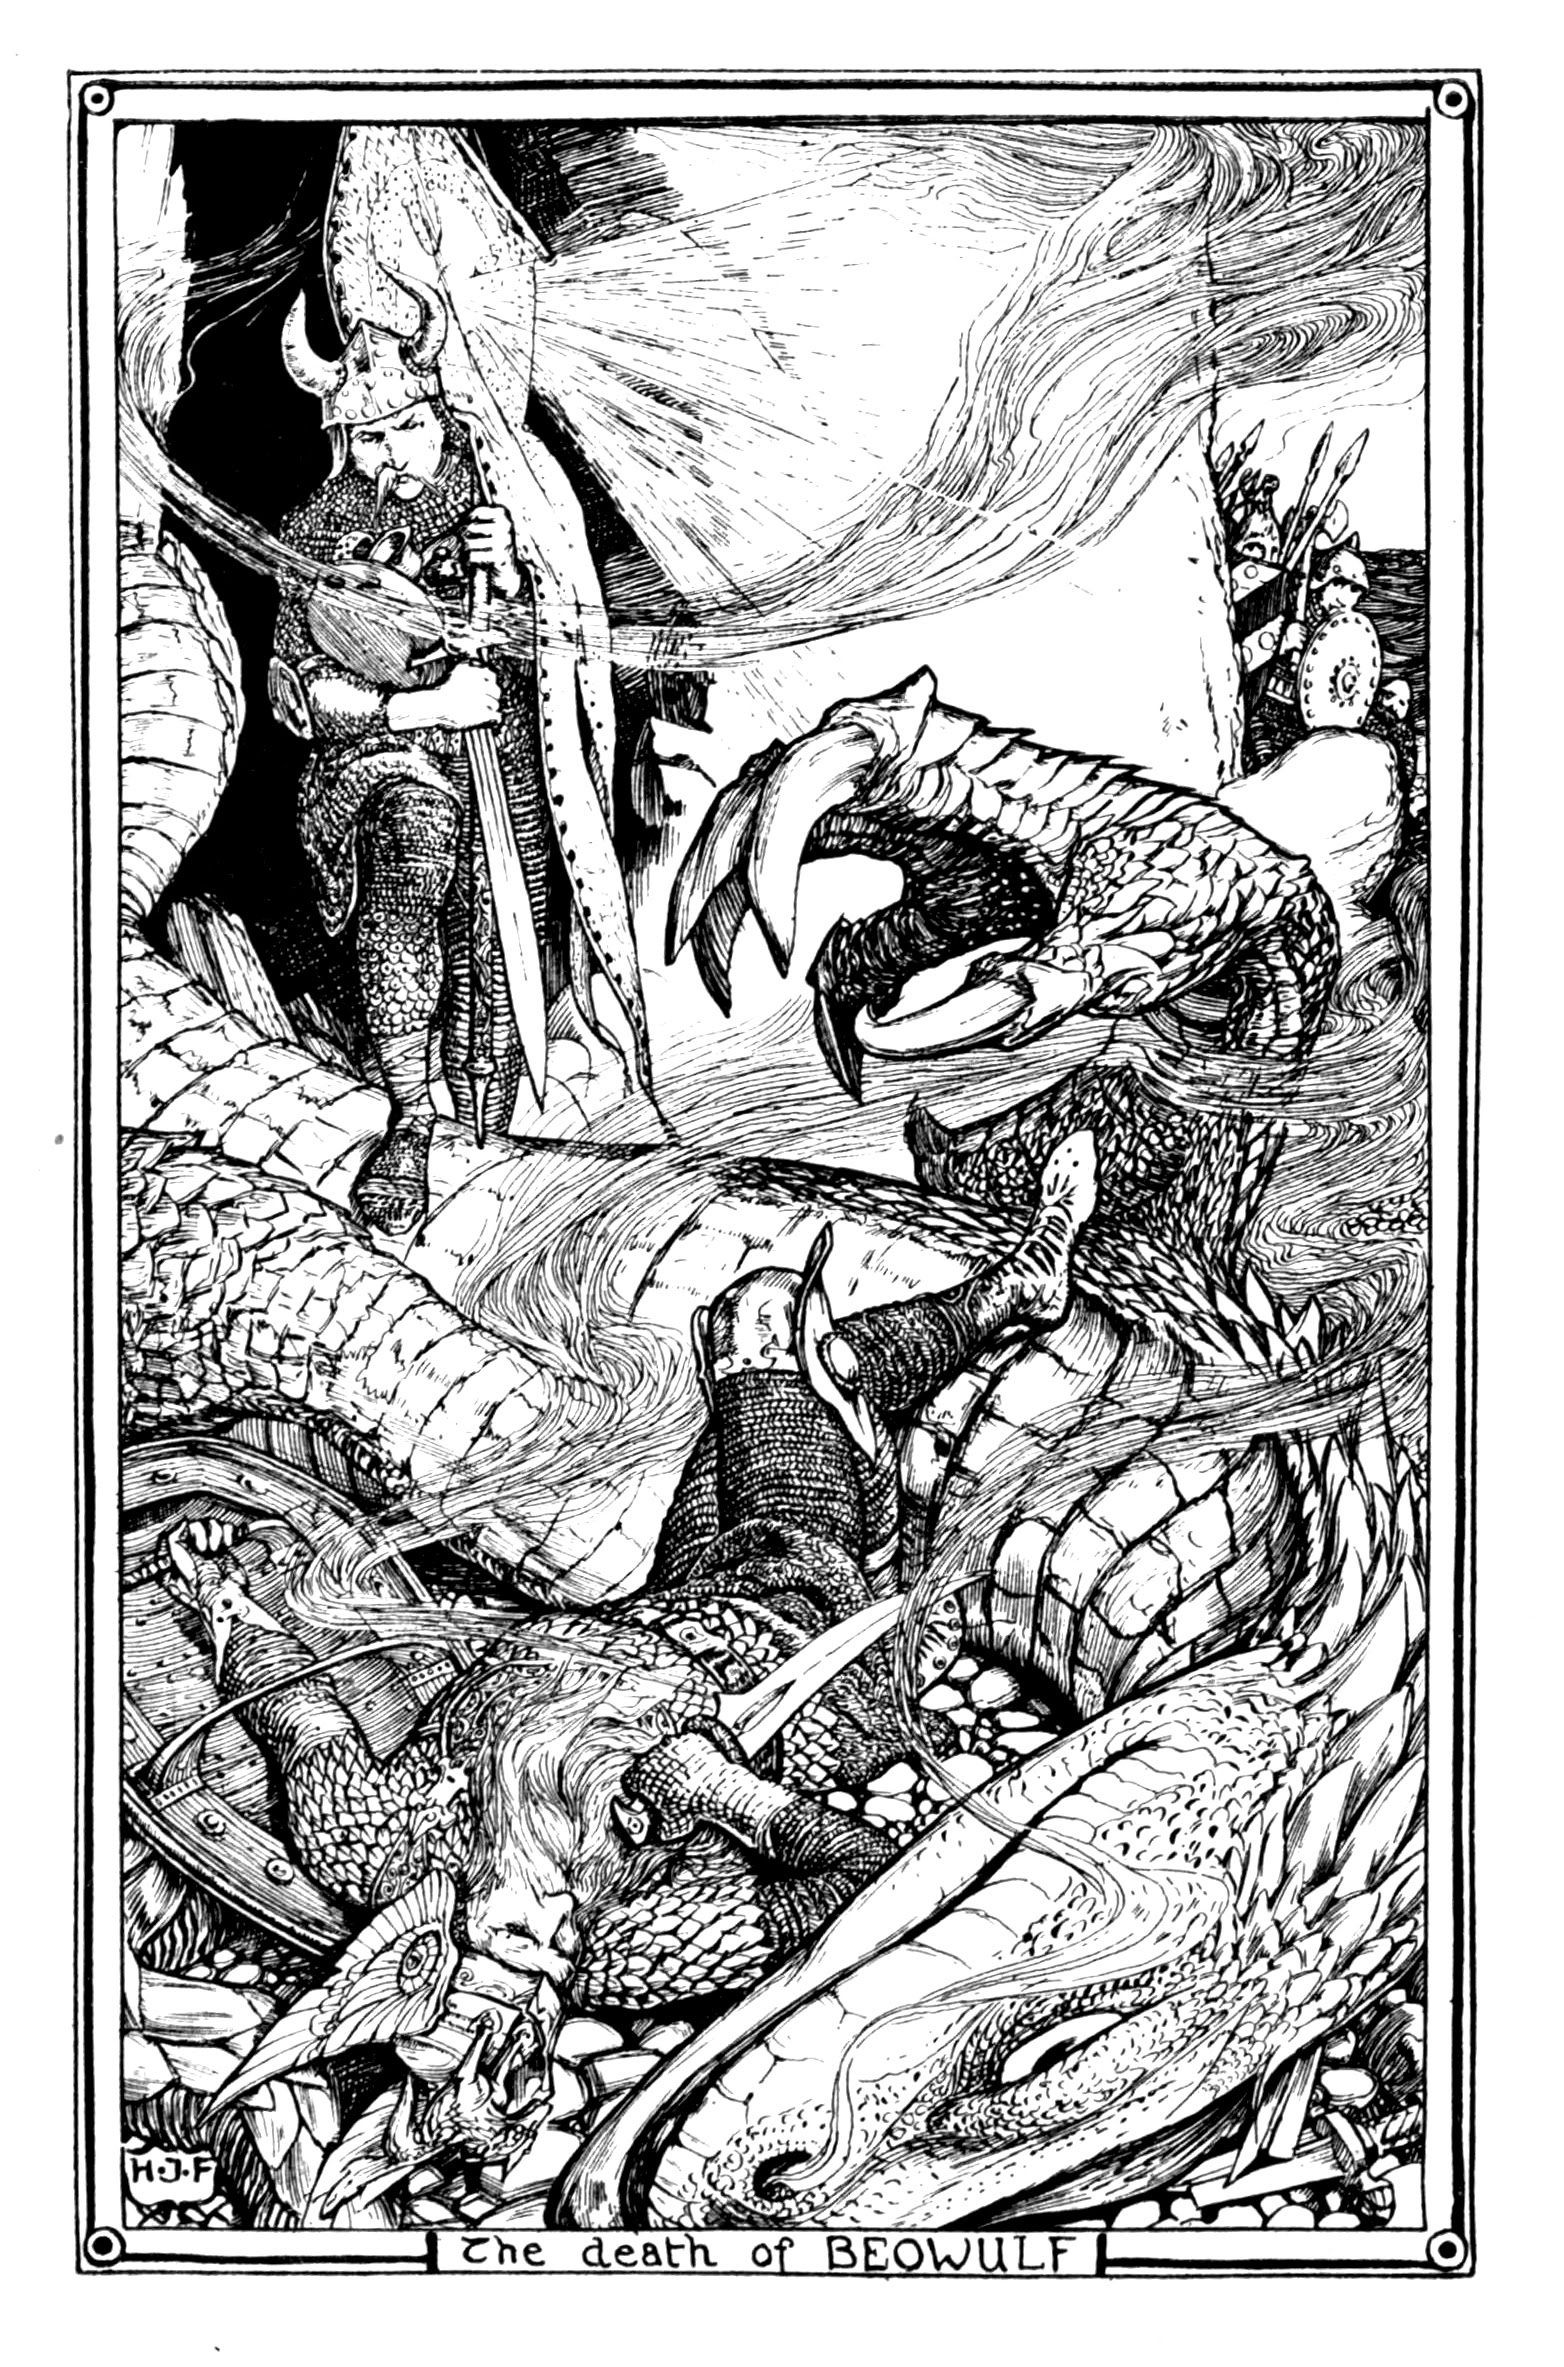 Henry Justice Ford - The red book of animal stories selected and edited by Andrew Lang, 1899 (illustration 8)